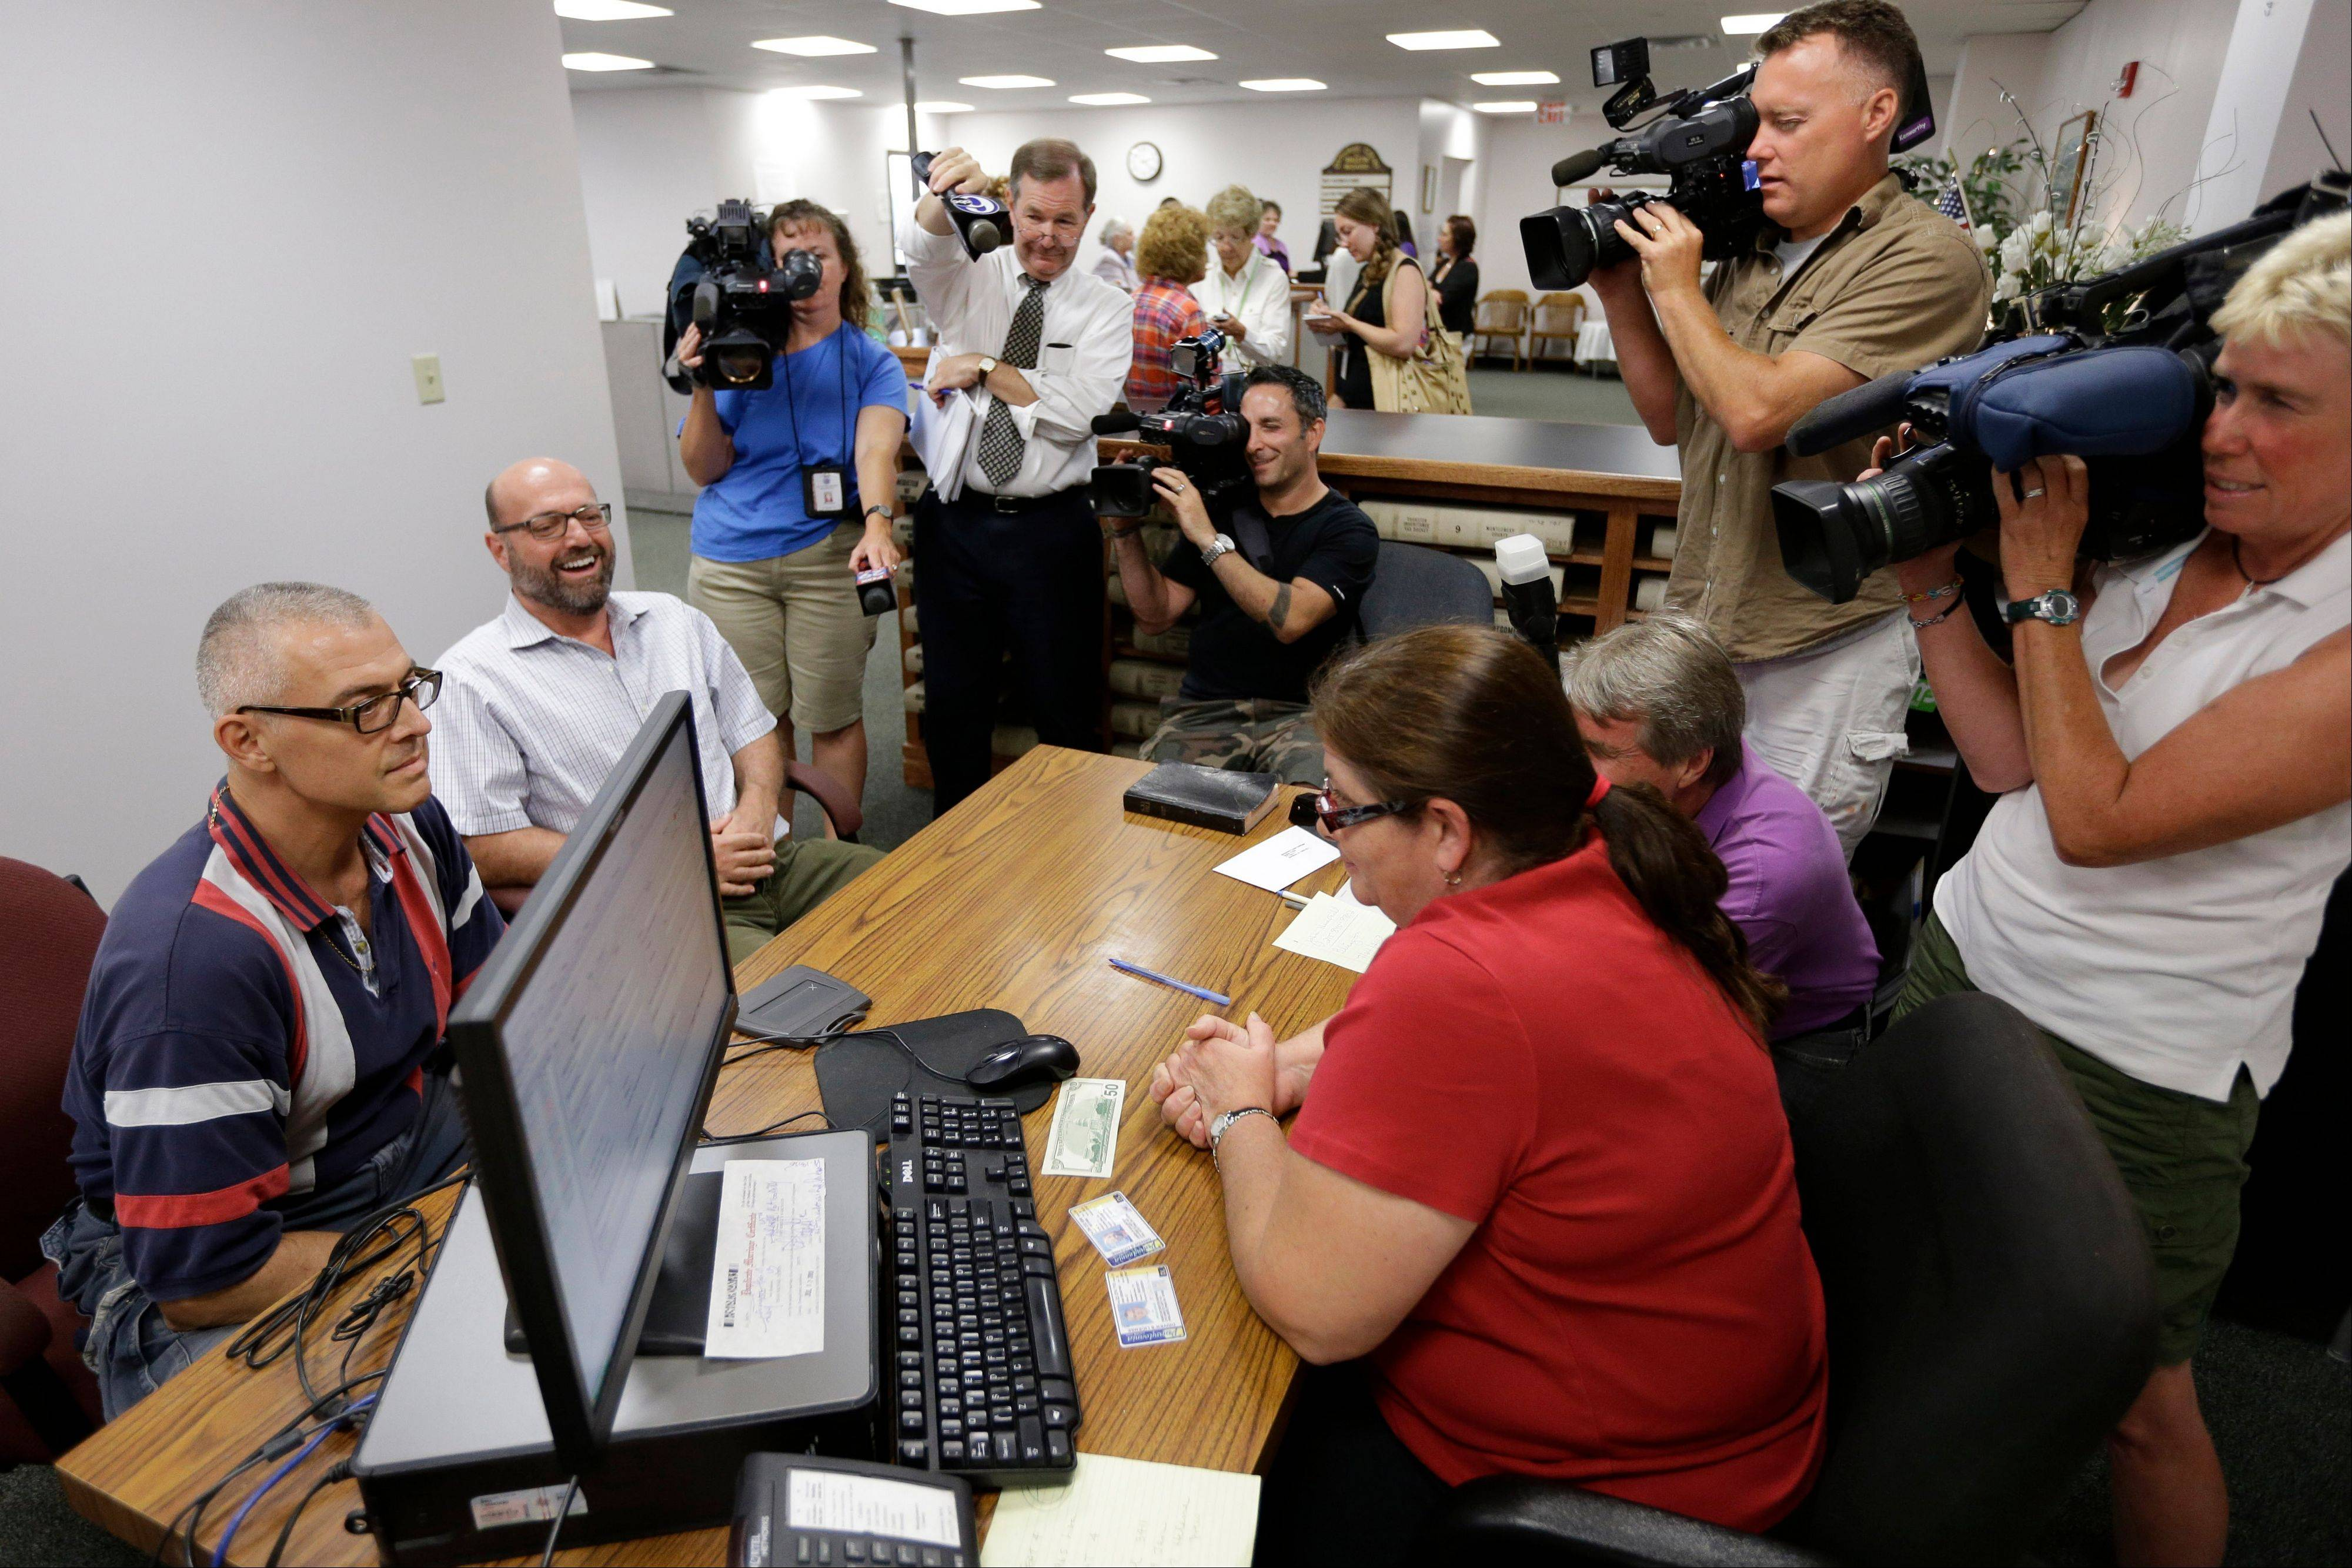 Marcus Saitschenko, left, and James Goldstein obtain a marriage license at a Montgomery County office despite a state law banning such unions, Wednesday, July 24, 2013, in Norristown, Pa. Five same-sex couples have obtained marriage licenses in the suburban Philadelphia county that is defying a state ban on such unions.